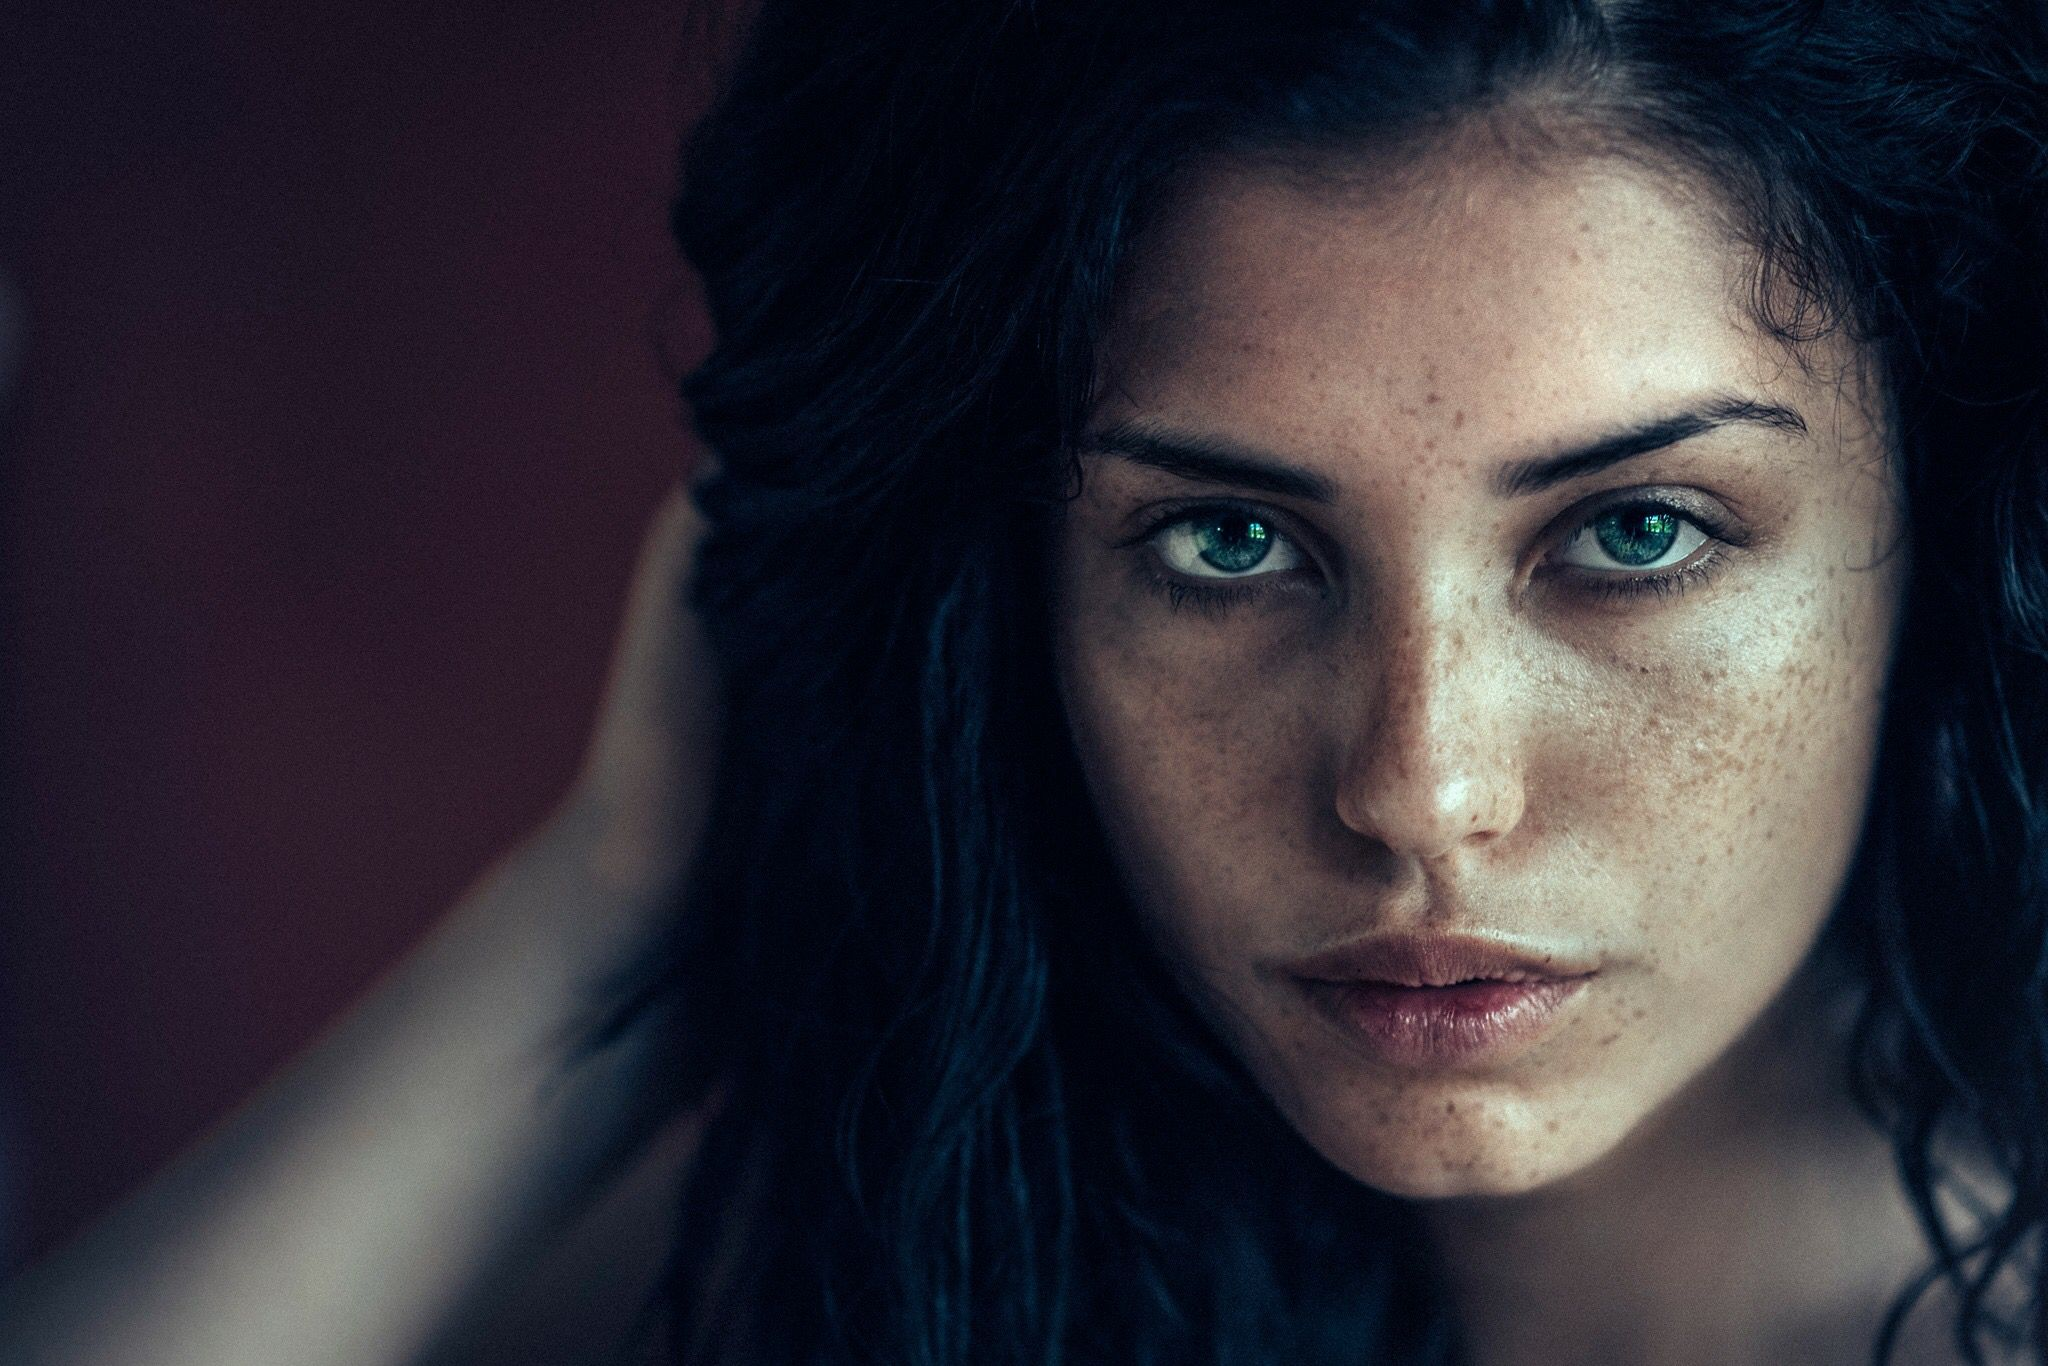 Luzie Green eyes, natural beauty, no retouch, no makeup